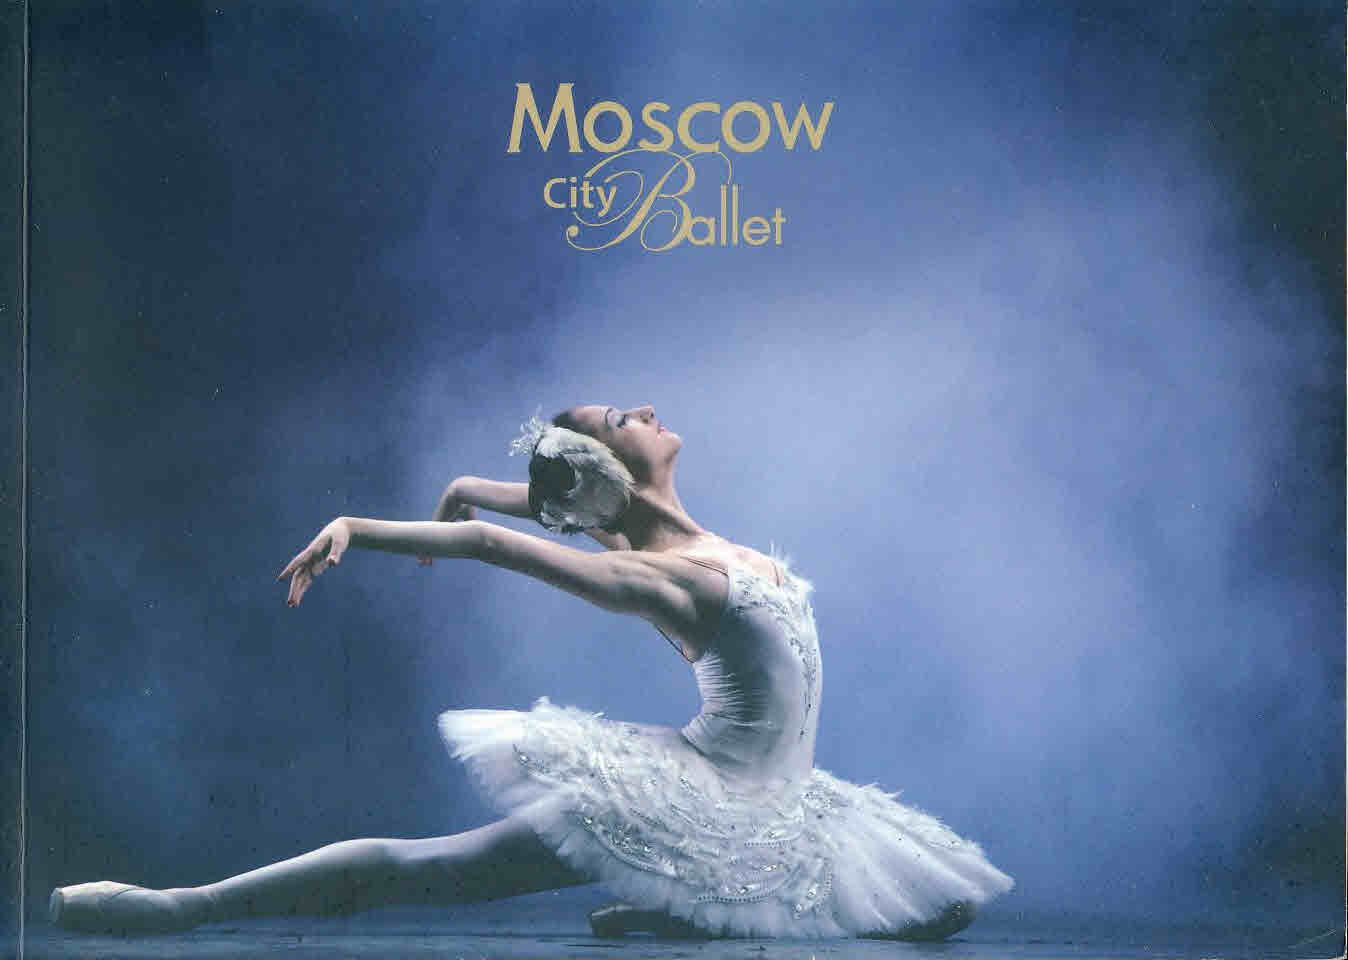 Moscow City Ballet UK Tour 2011-2012 Programme / Paperback booklet with info and photos from Swan Lake